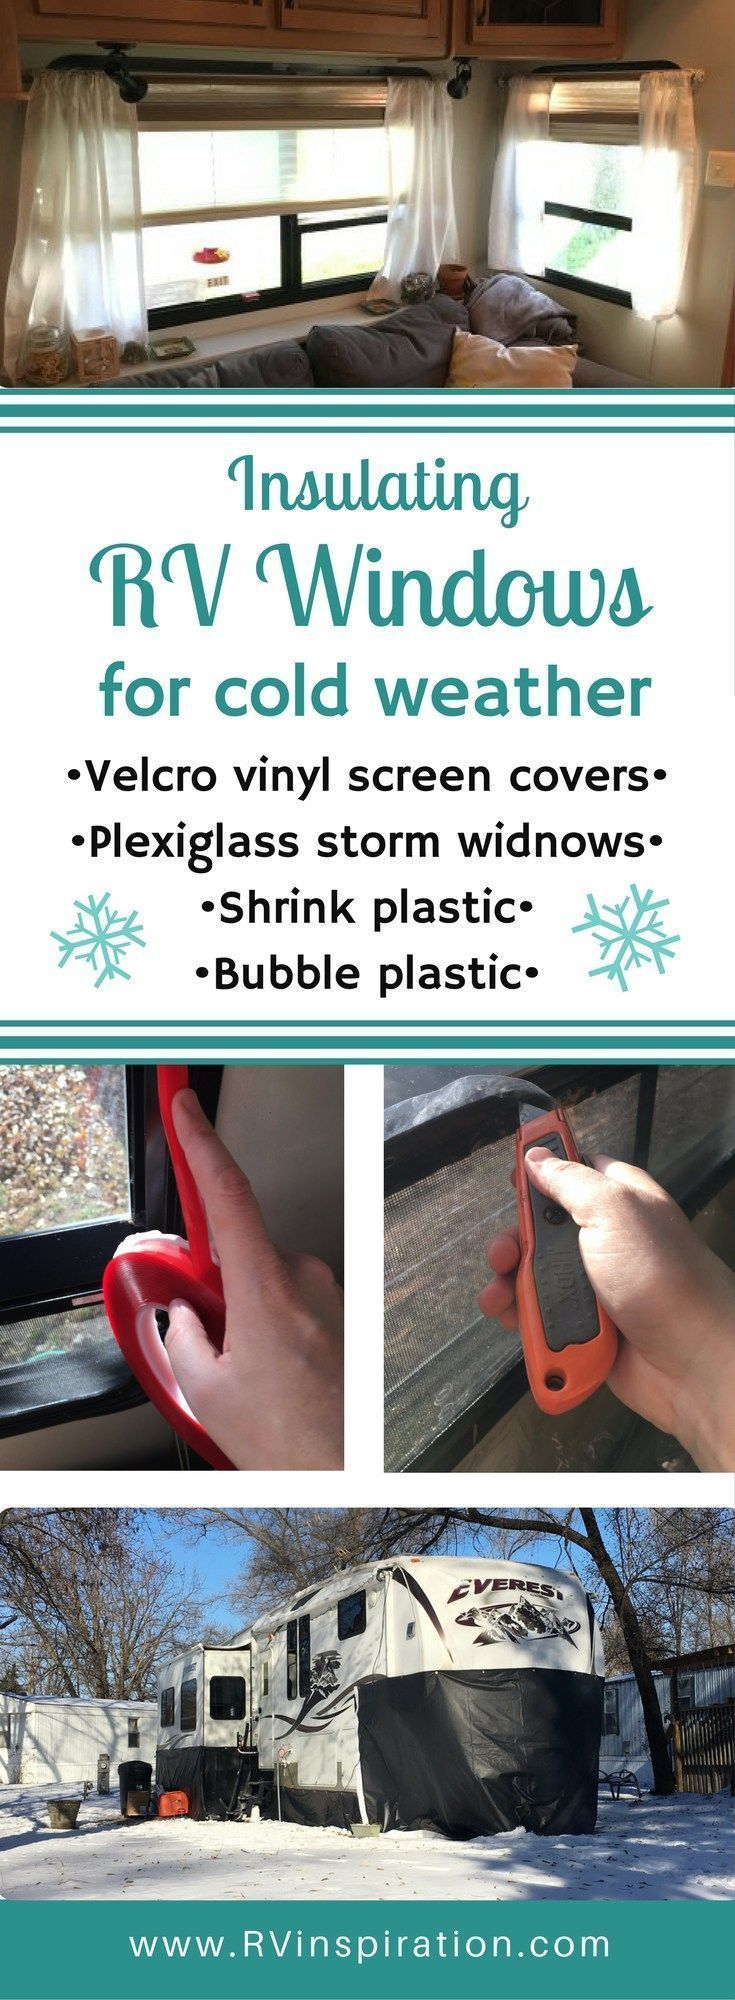 Here's how I made DIY plexiglass storm windows and clear vinyl Velcro screen covers to prepare my RV for cold weather this winter. #rvhacks